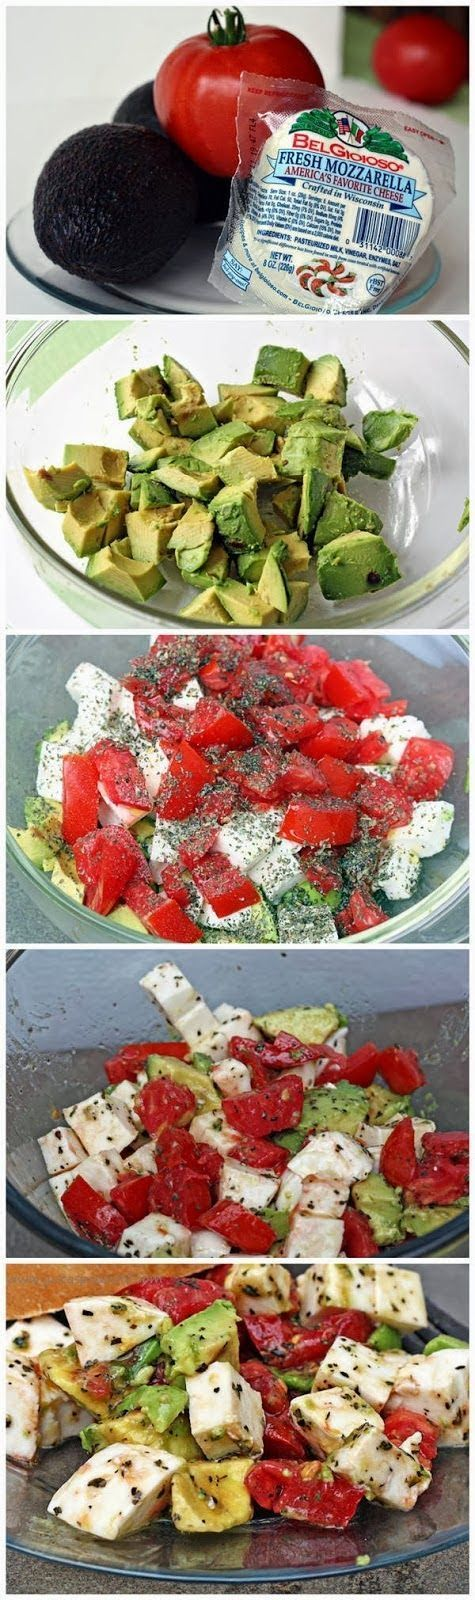 Mozzarella Salad with Avocado and Tomato. Perfect side or bedtime snack. | CookJino